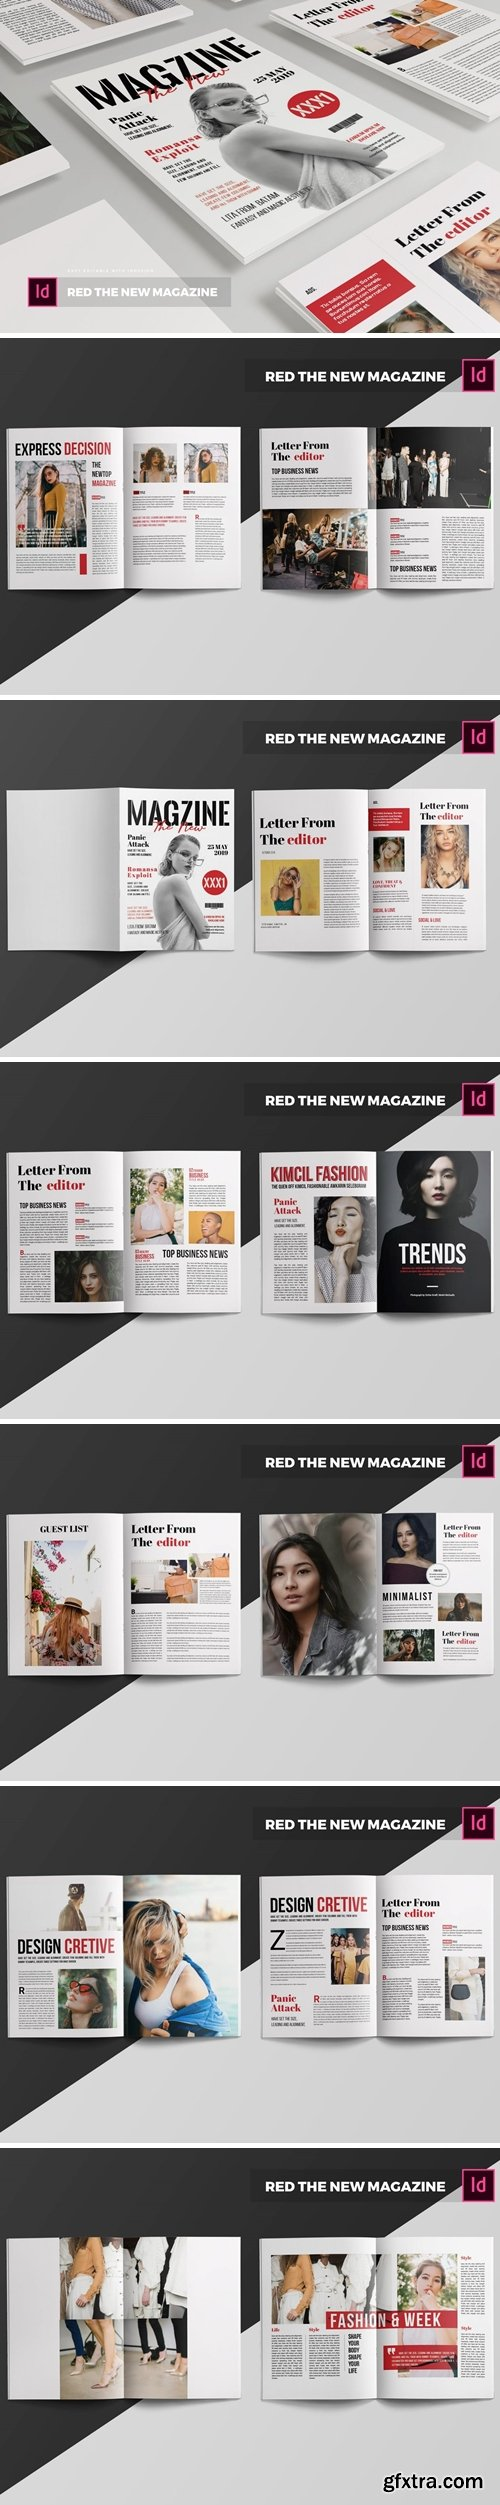 Red The New   Magazine Template